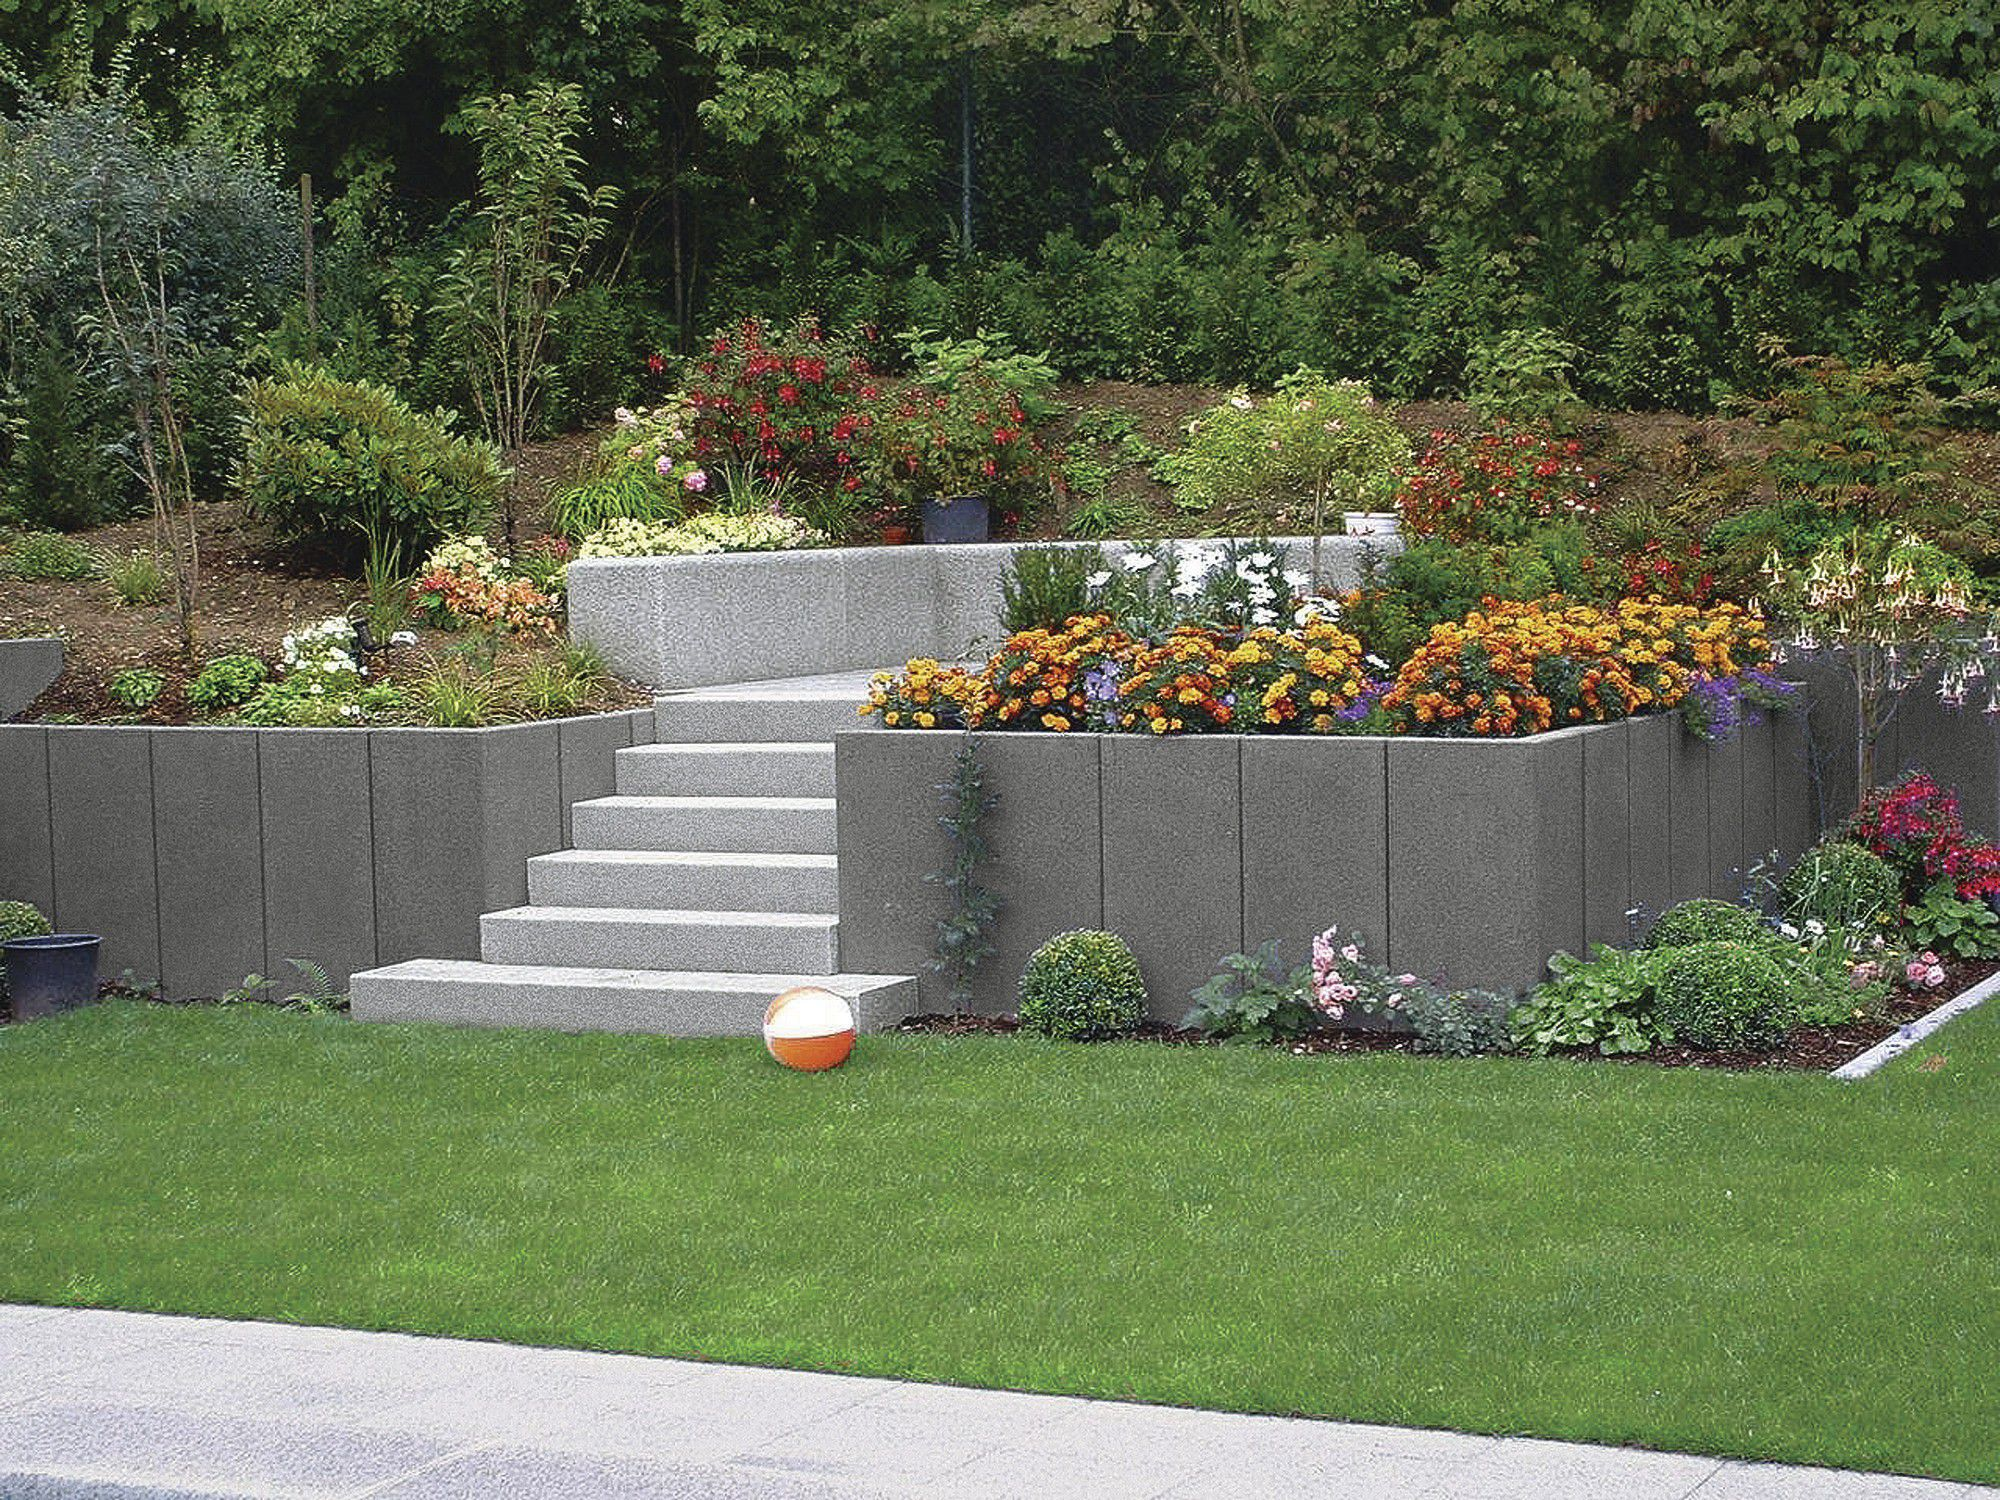 Stone retaining wall modular for garden enclosures Rinn